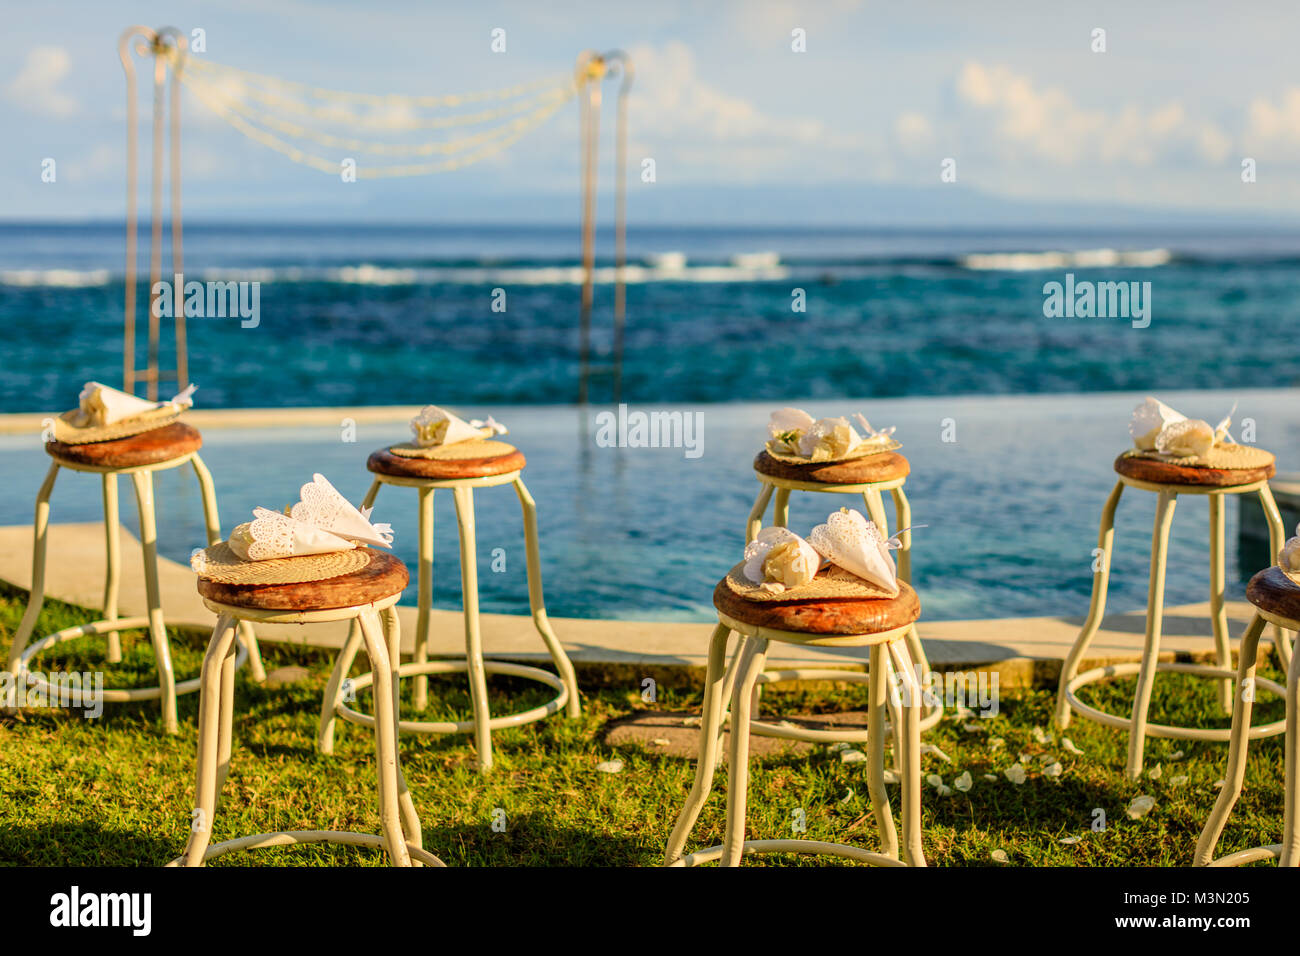 ab36ccad9f48c Wedding ceremony setup near the ocean at sunset - chairs for guests with  flower petals and